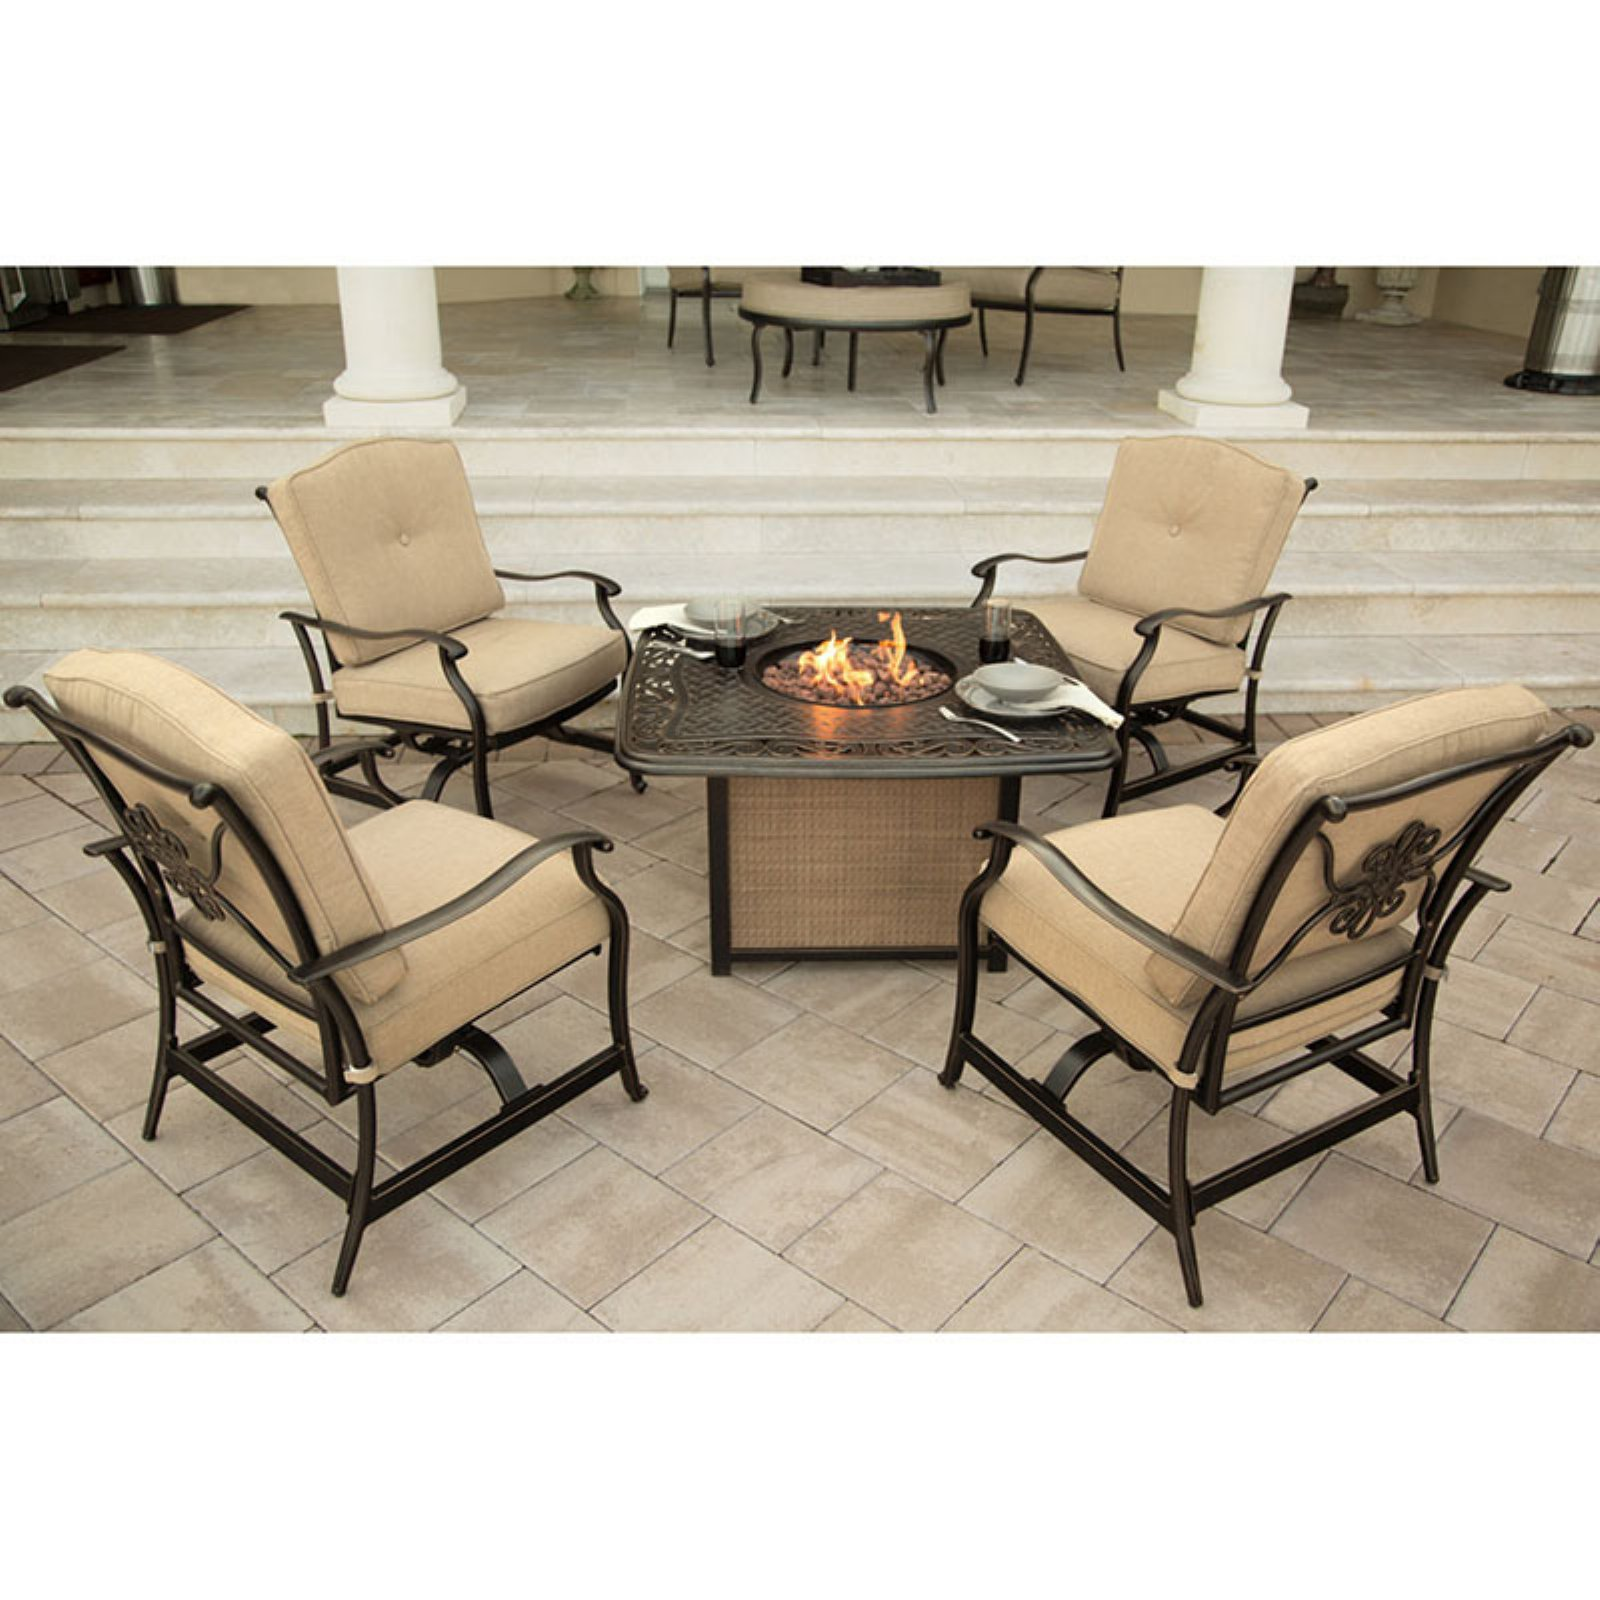 Hanover Outdoor Traditions 5-Piece Cast-Top Fire Pit Conversation Set, Natural Oat/Bronze